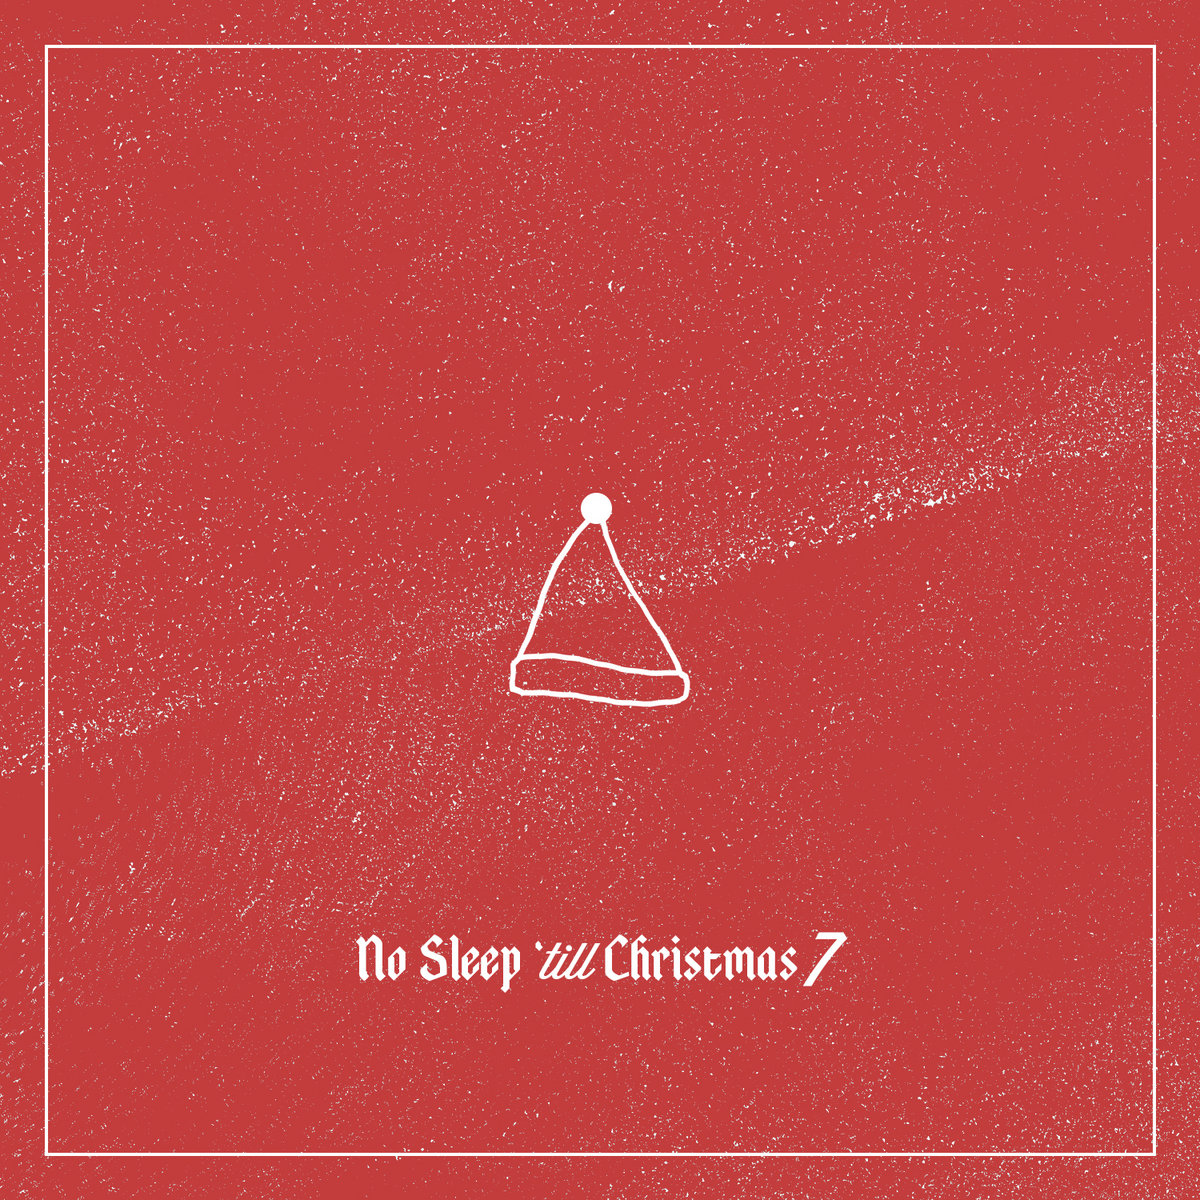 no sleep til christmas